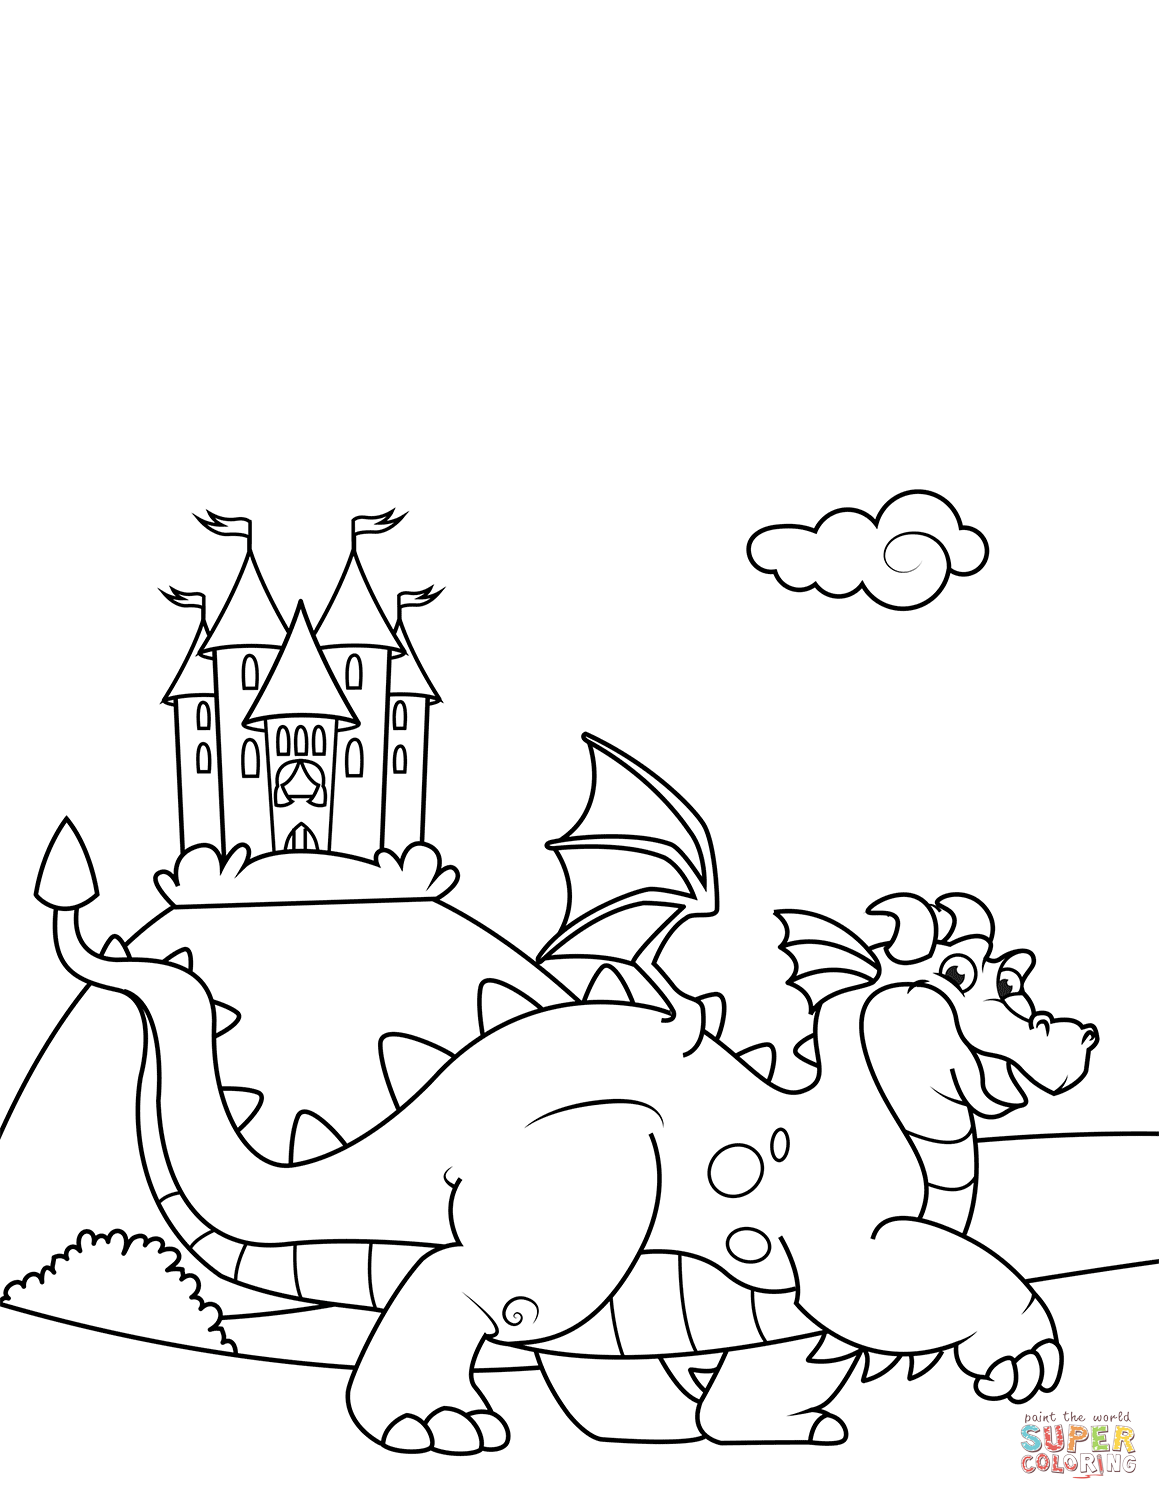 Cute Dragon In Front Of A Castle Coloring Page